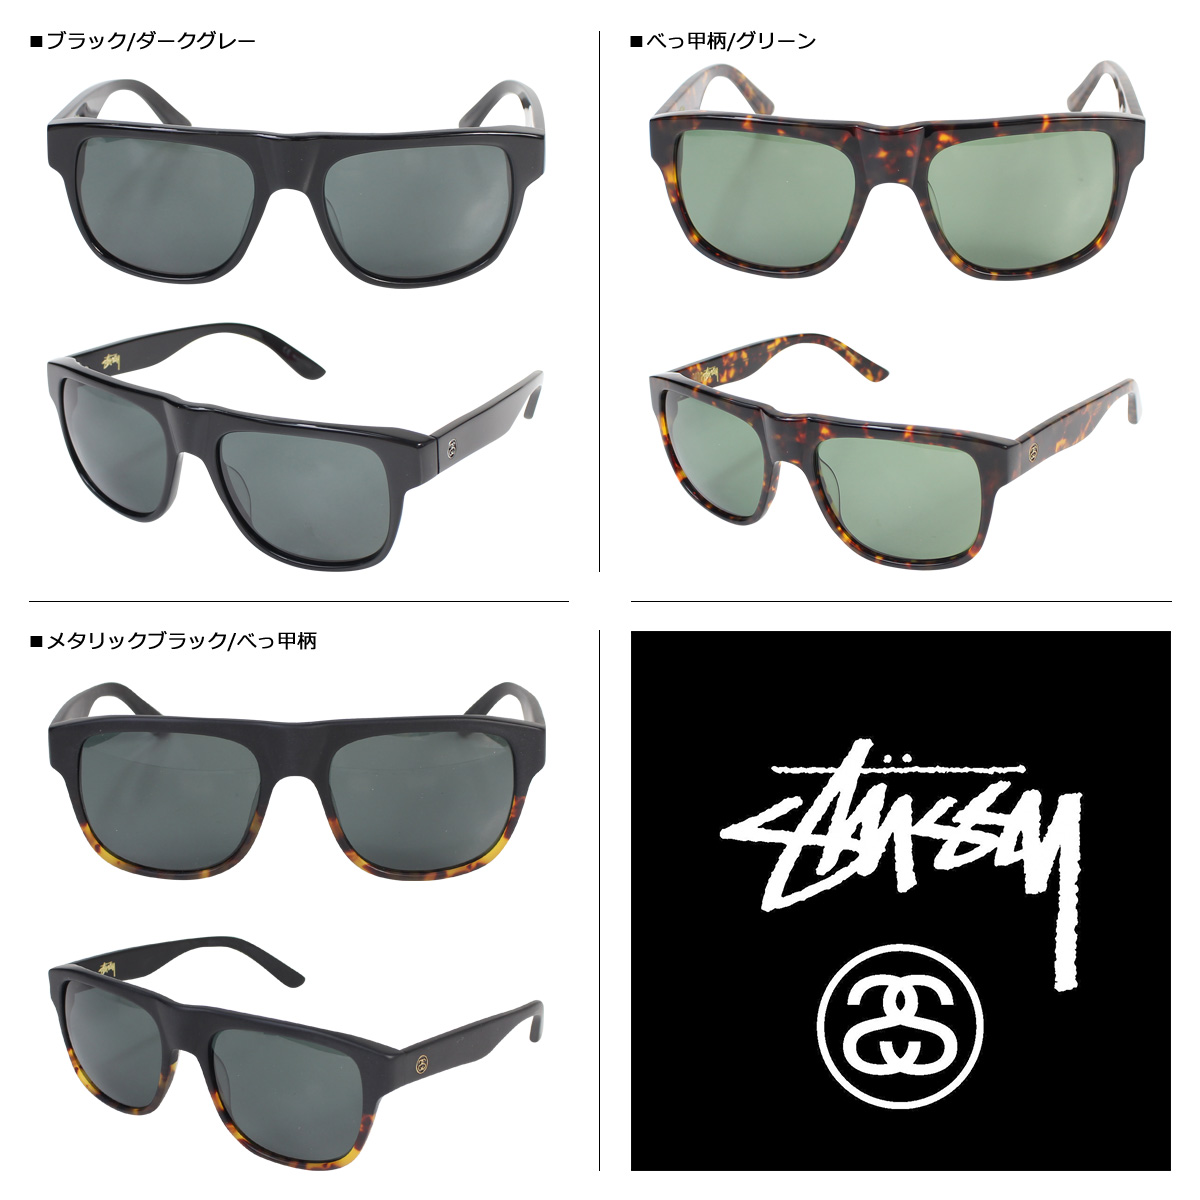 ステューシー STUSSY sunglasses men gap Dis UV cut Santana SANTANA SUNGLASS eyewear EYEWEAR 3 color [7/12 Shinnyu load]